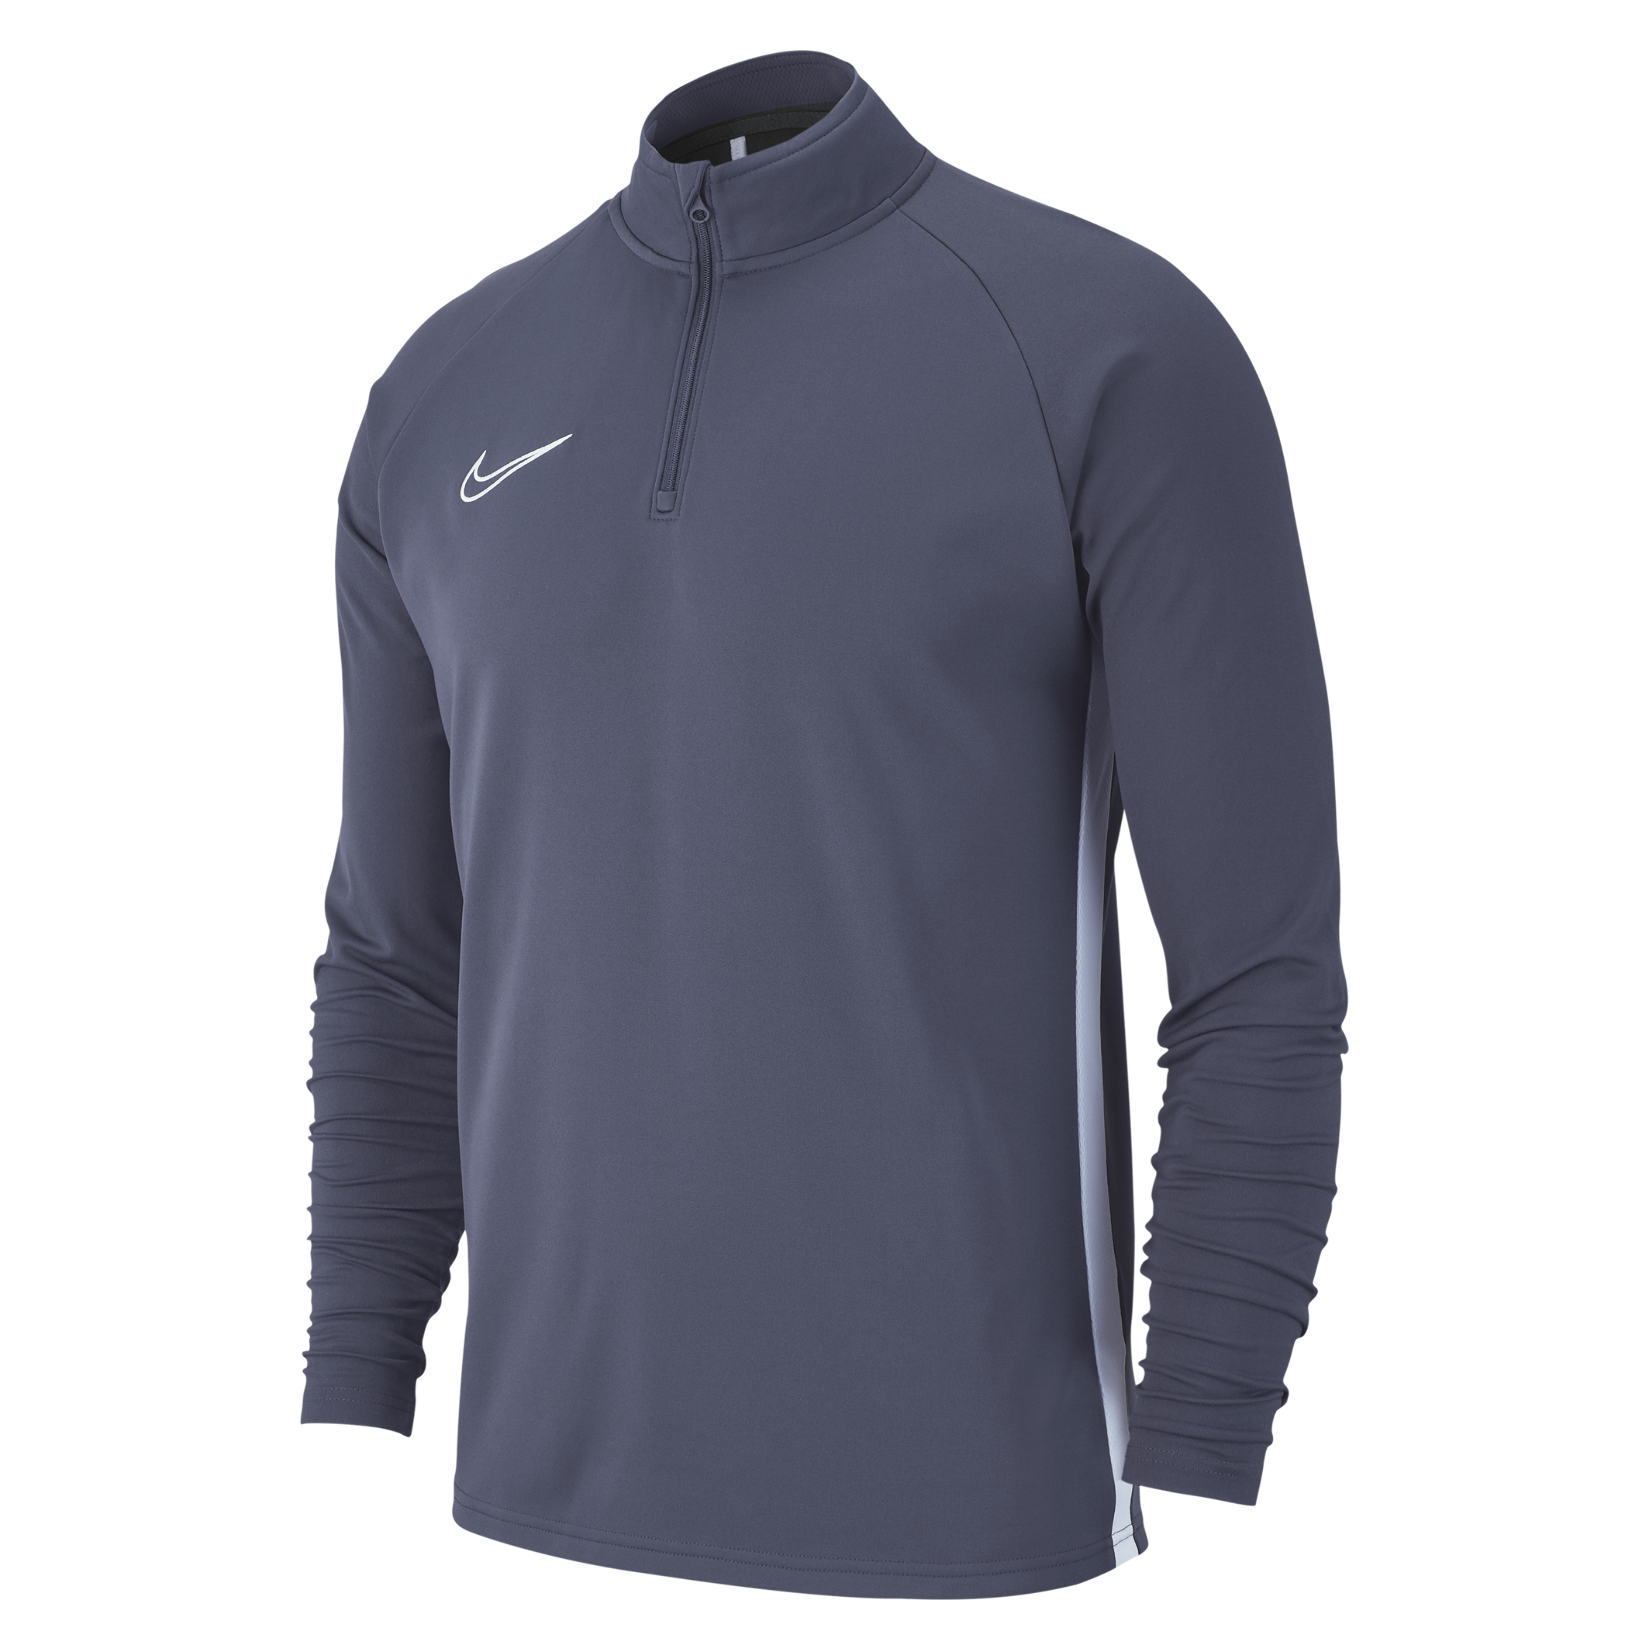 Nike Dri-fit Academy 19 Midlayer